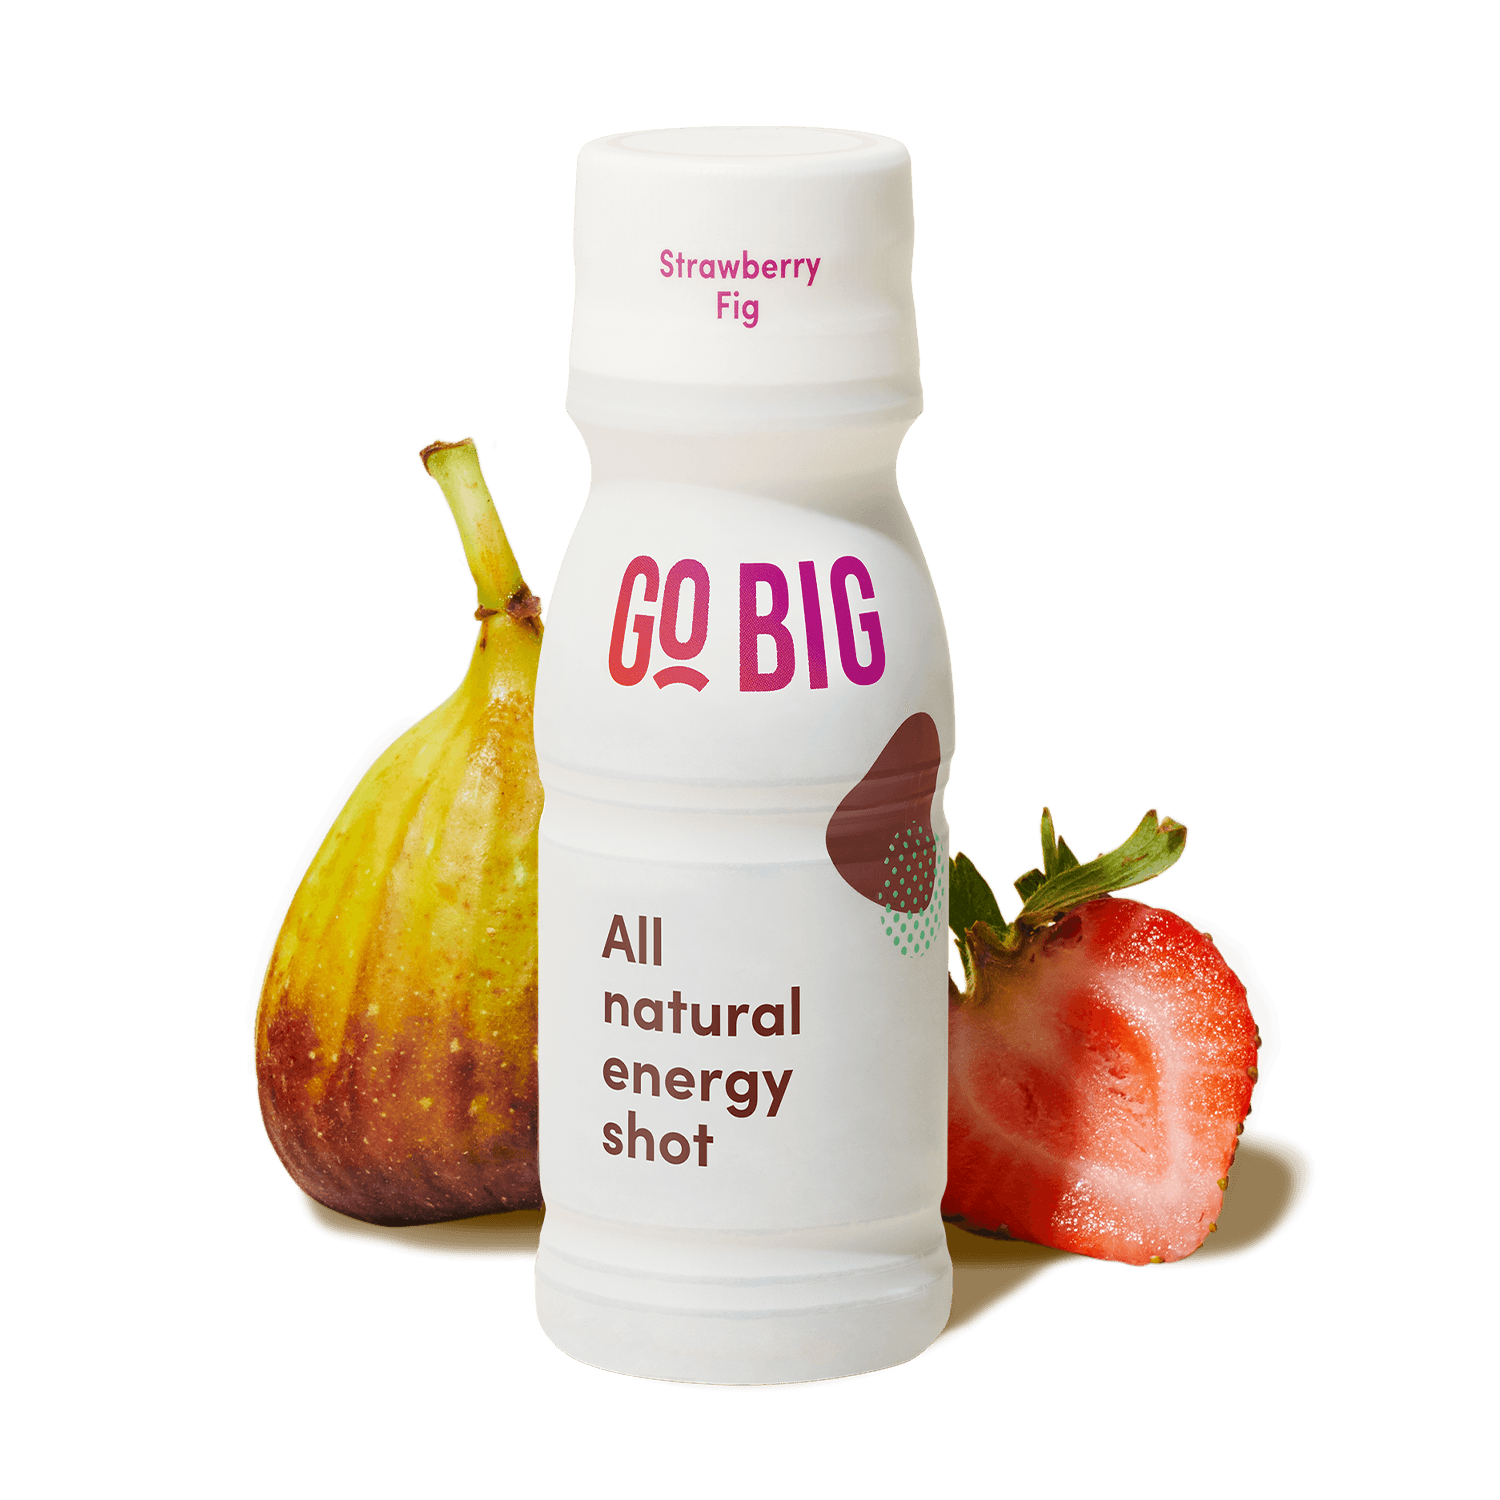 GO BIG strawberry fig energy shot